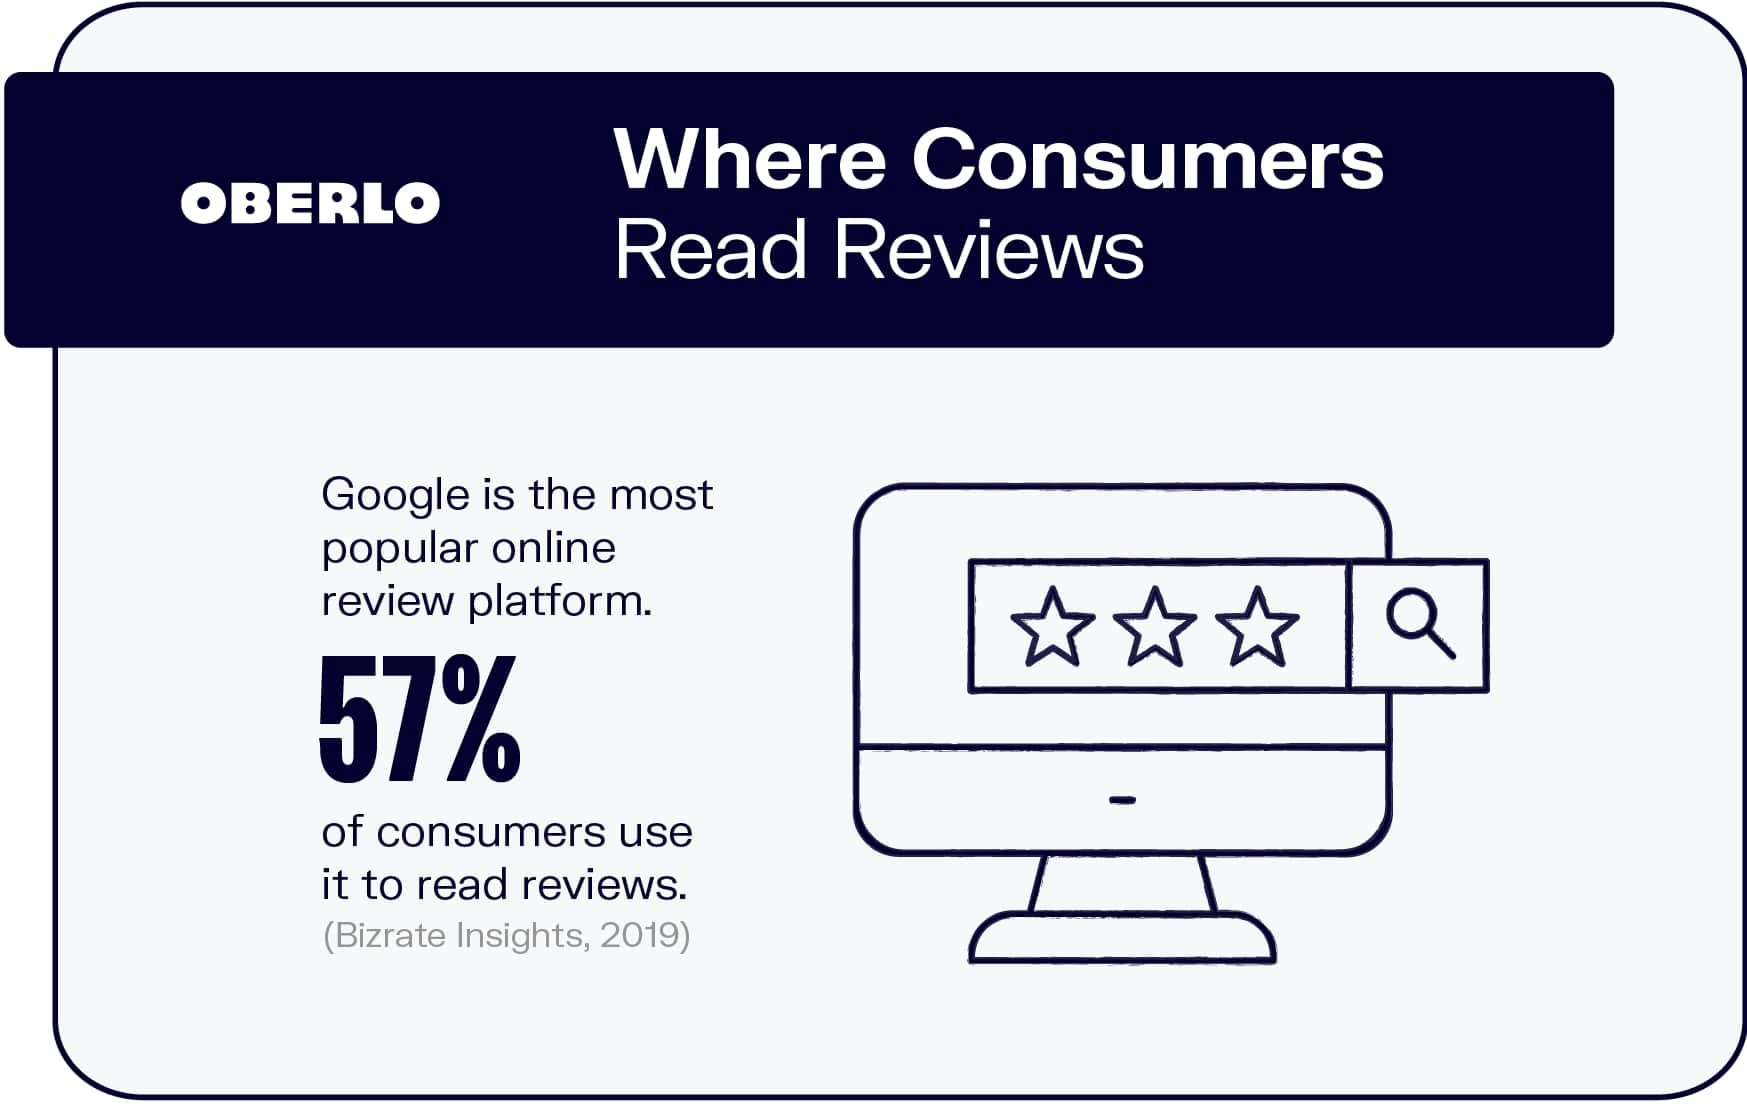 Where Consumers Read Reviews